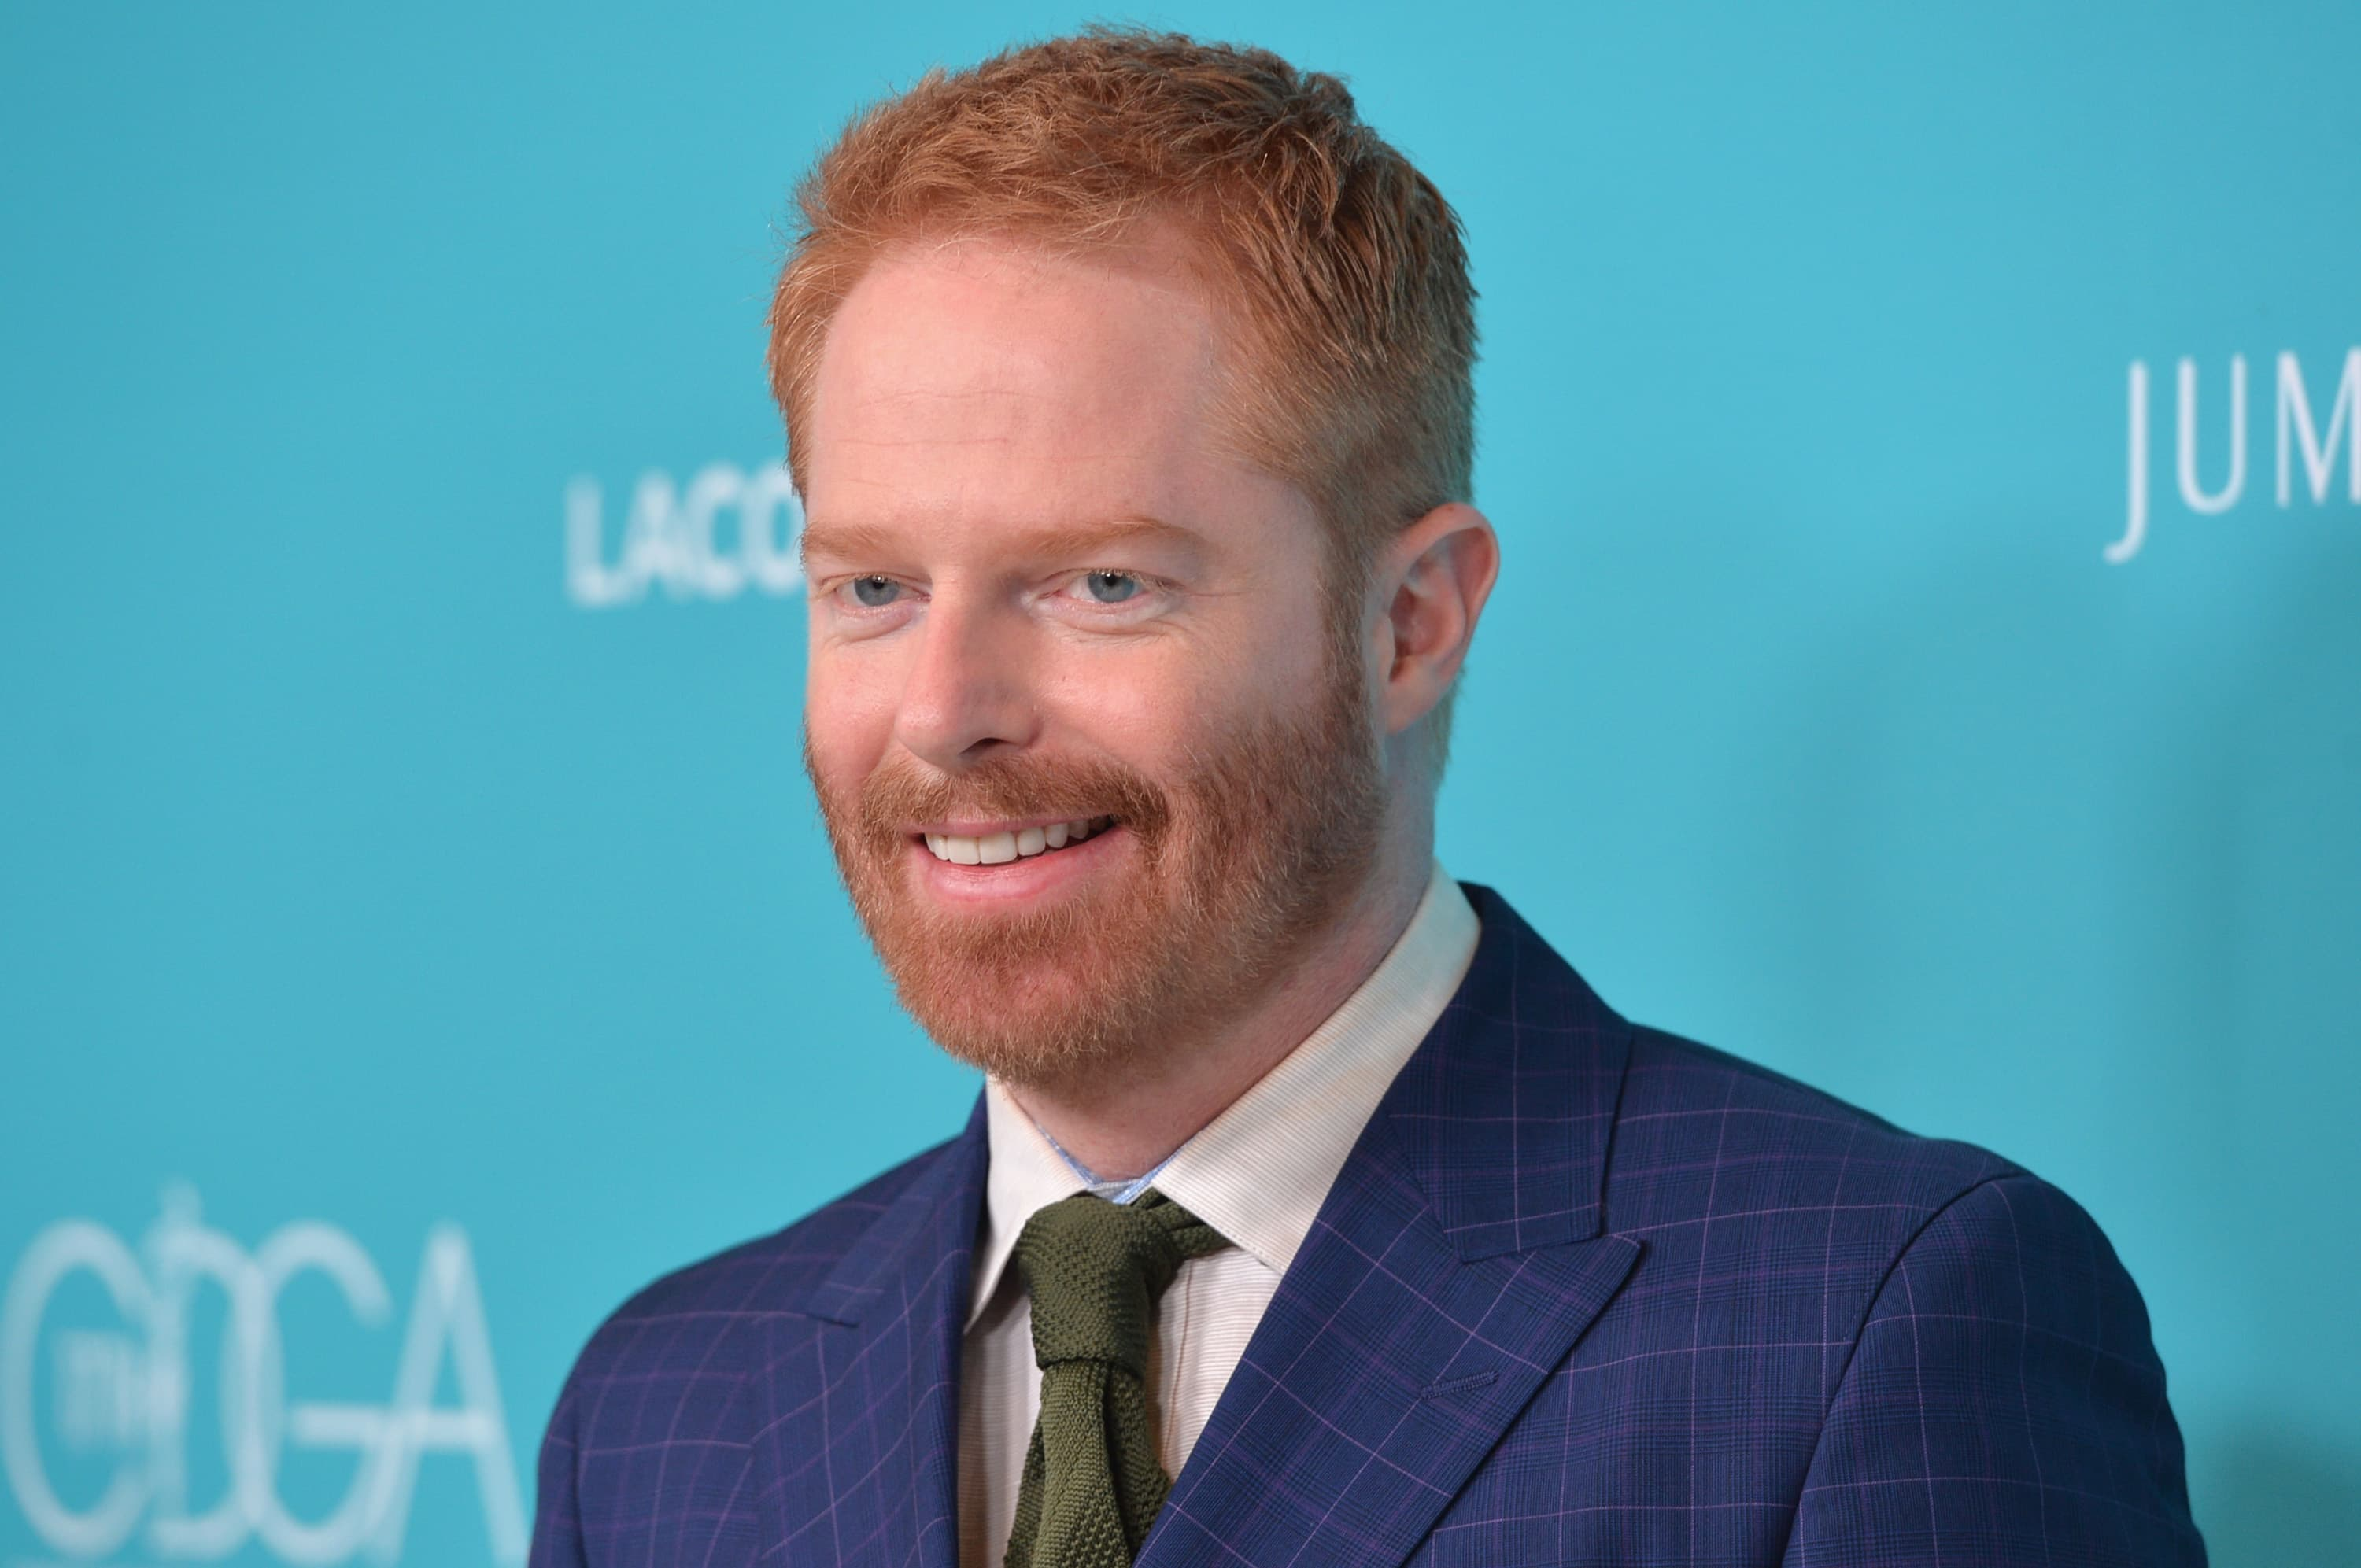 HGTV's 'Extreme Makeover' Reboot Will Be Hosted By Jesse Tyler Ferguson from 'Modern Family'